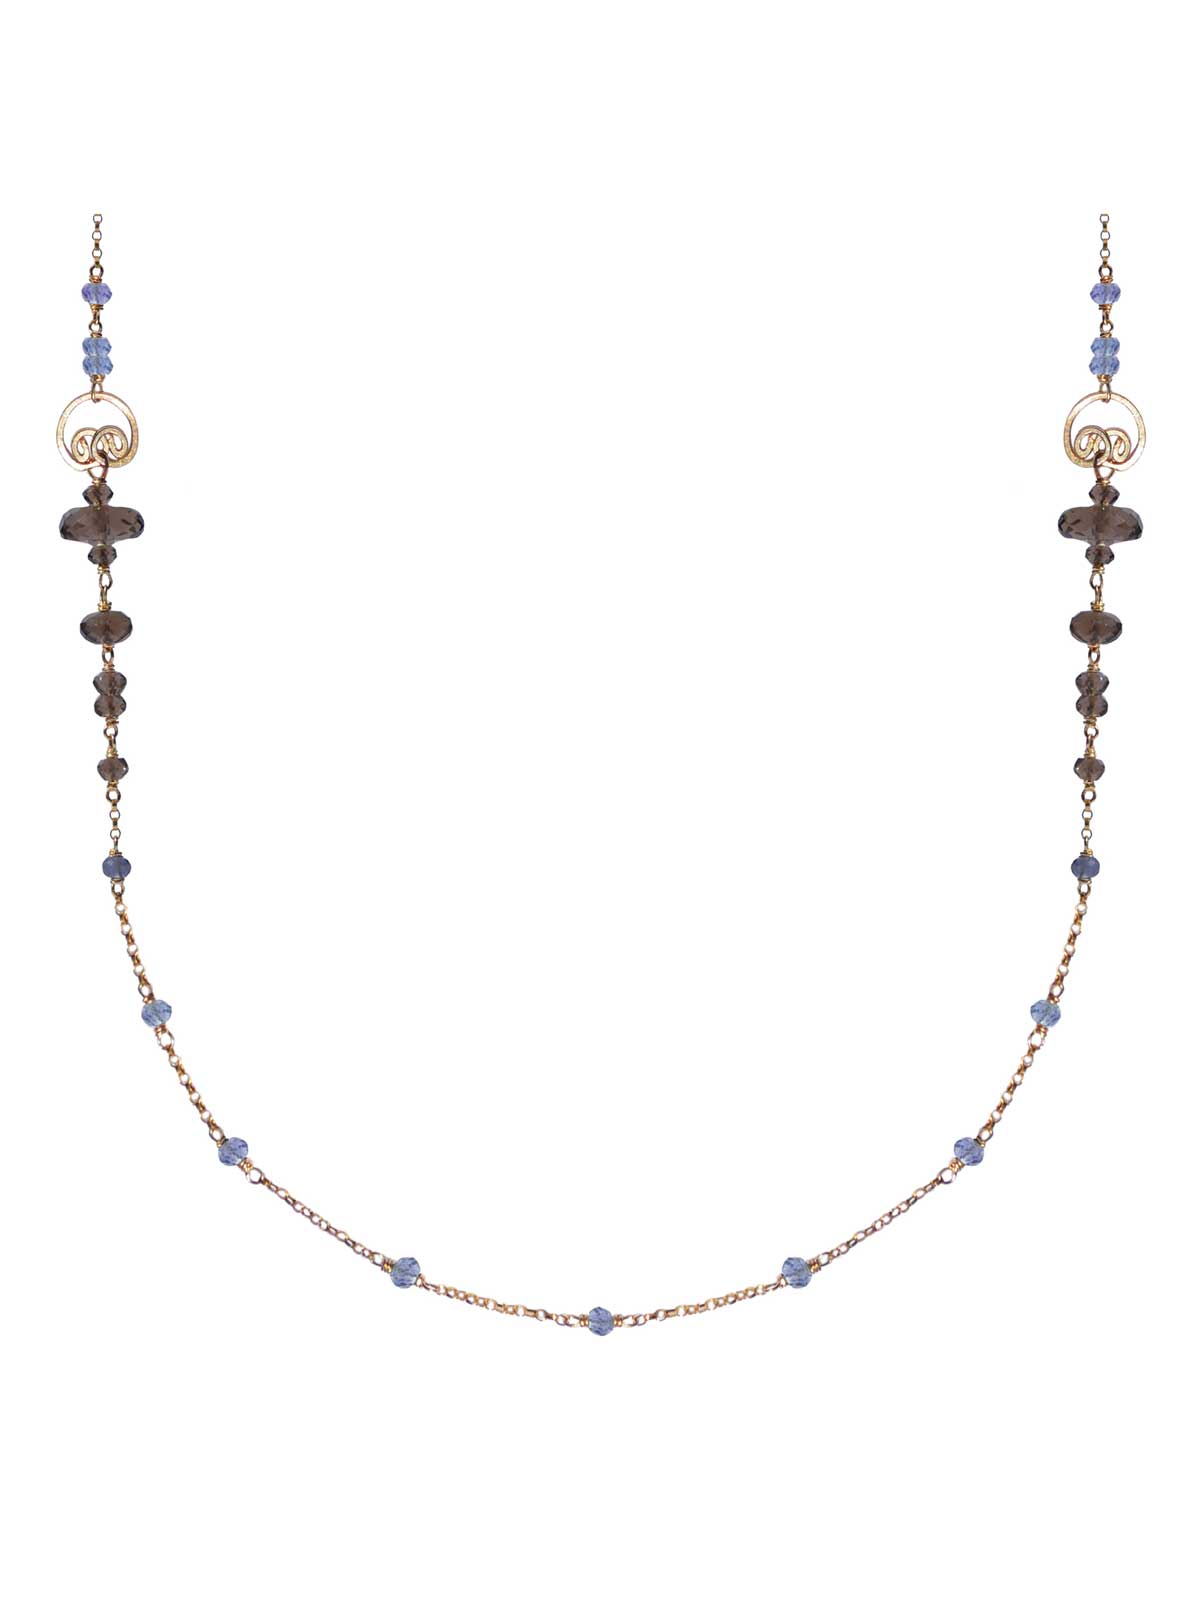 Necklace 14K Gold-filled chain and semi-precious stones : faceted Smoky Quartz Iolite